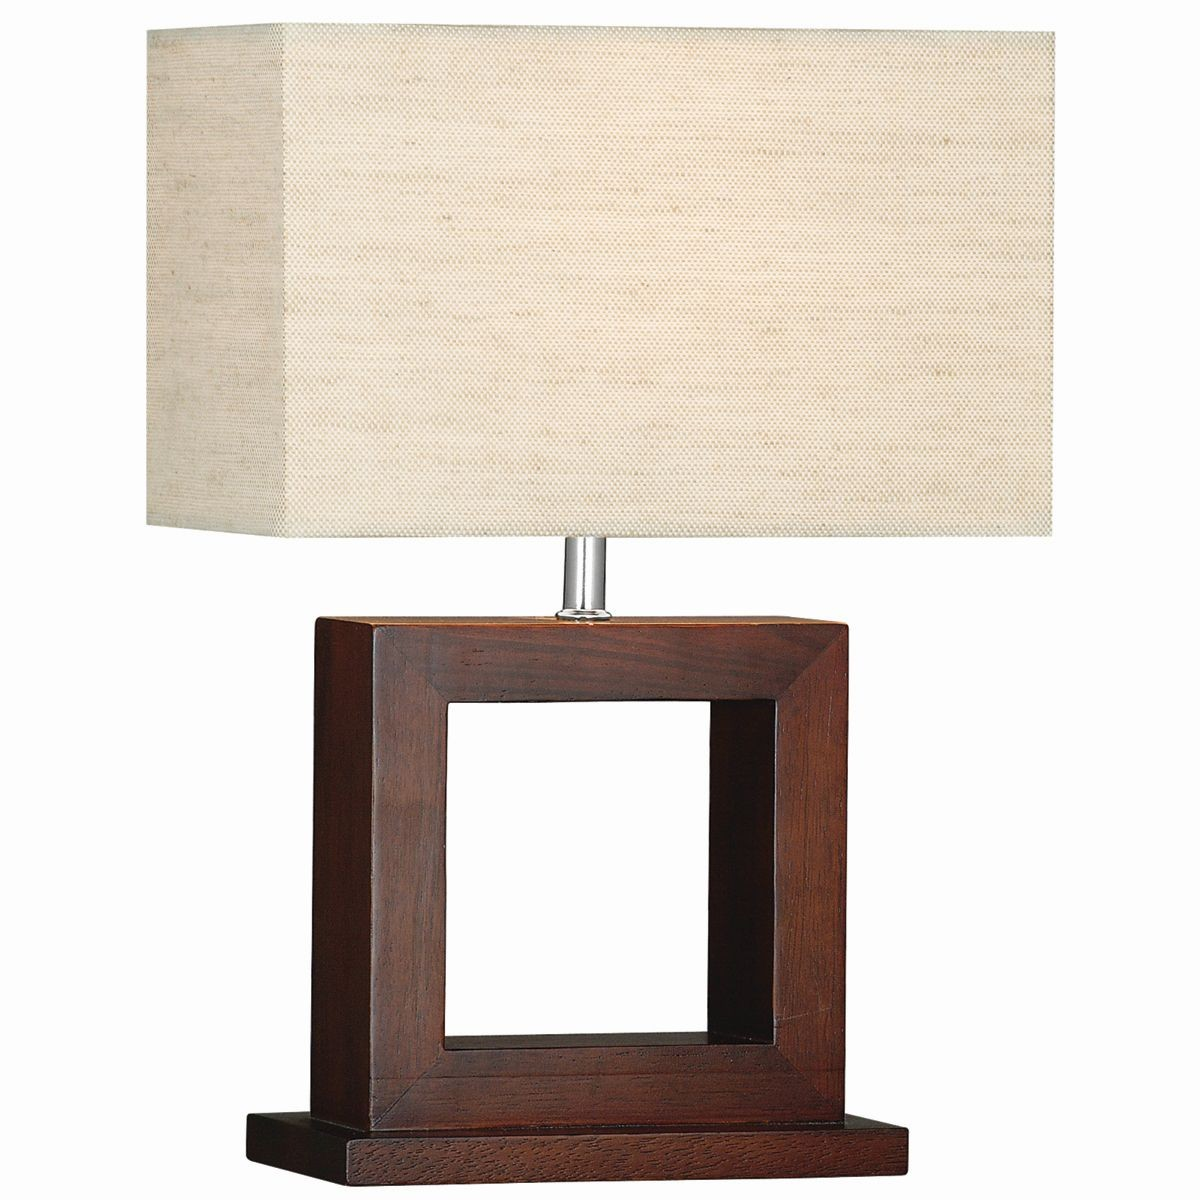 cosmopolitan table lamp solid wood. Black Bedroom Furniture Sets. Home Design Ideas